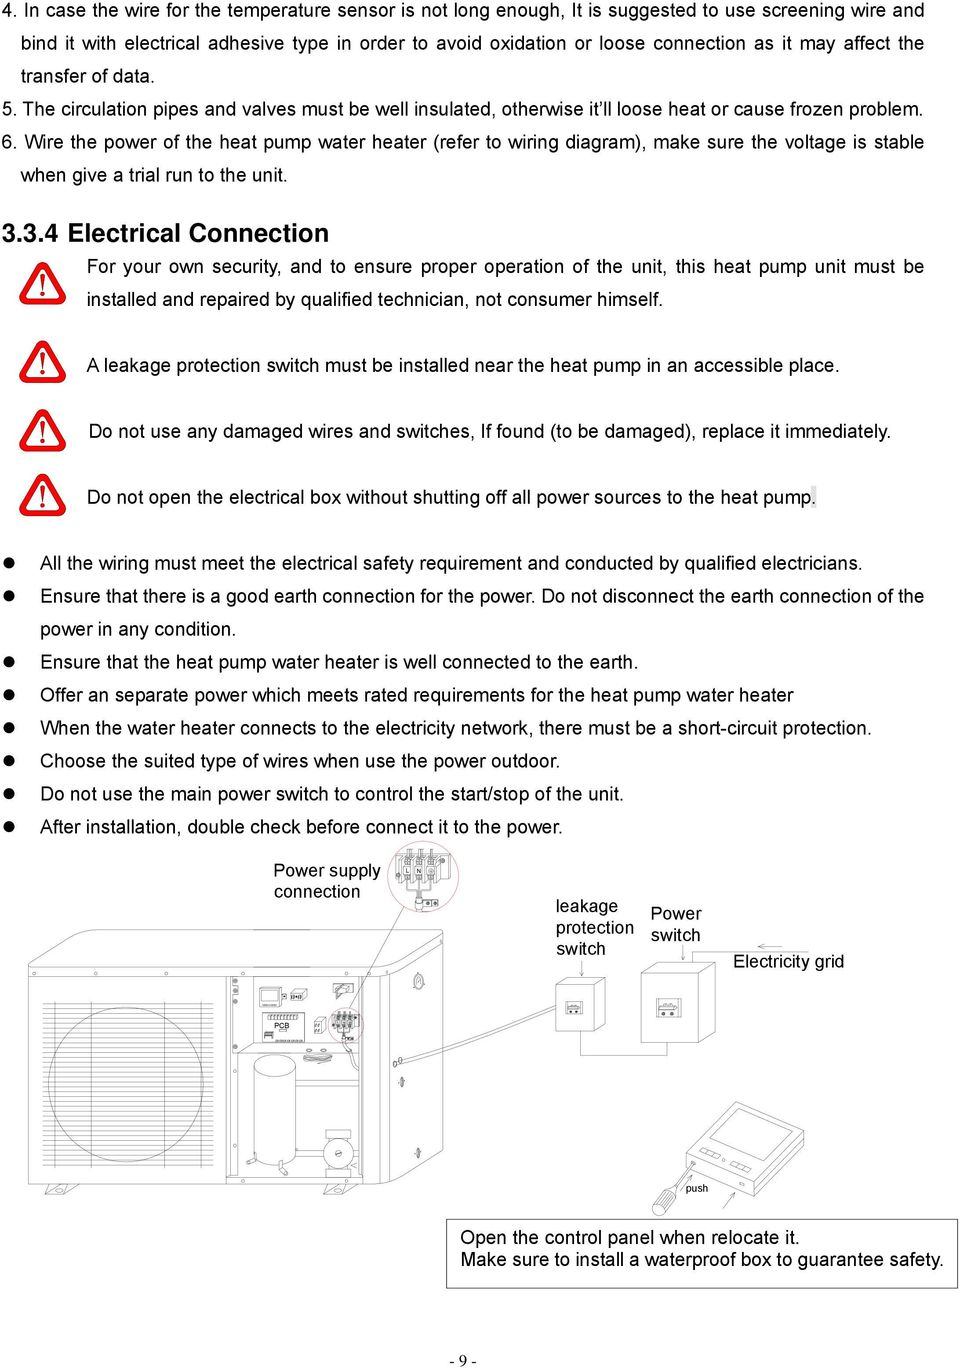 Instruction Manual Model Gt Skr010b Skr015b Skr020b Power Grid Wiring Diagram May Affect The Transfer Of Data 5 Circulation Pipes And Valves Must Be